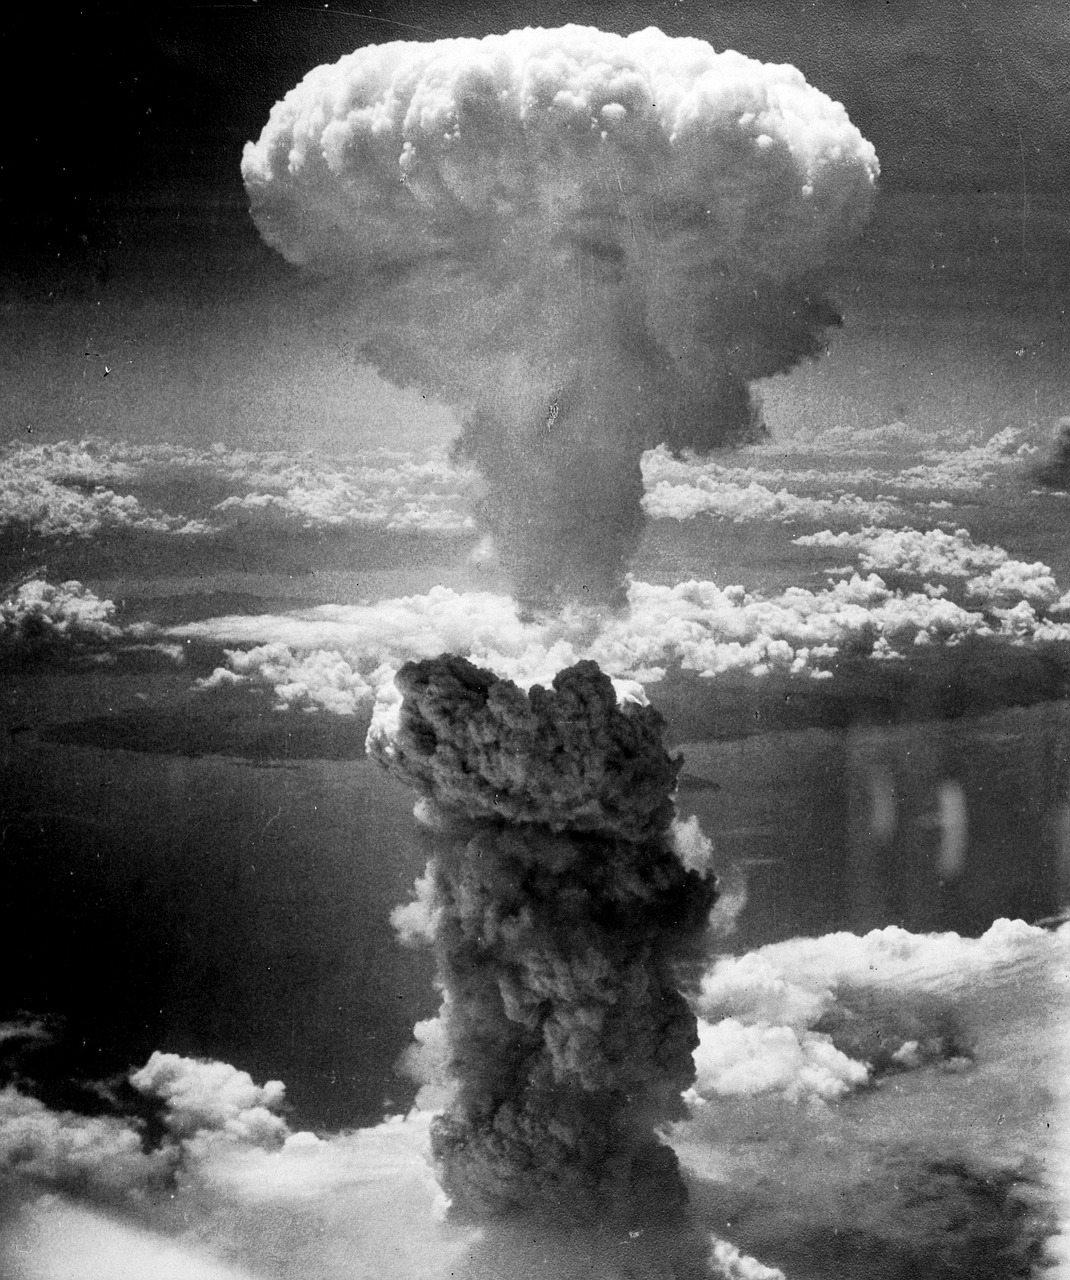 <h1>Fears Of Nuclear War Mount As Russian TV Reveal Scary Blueprints</h1>